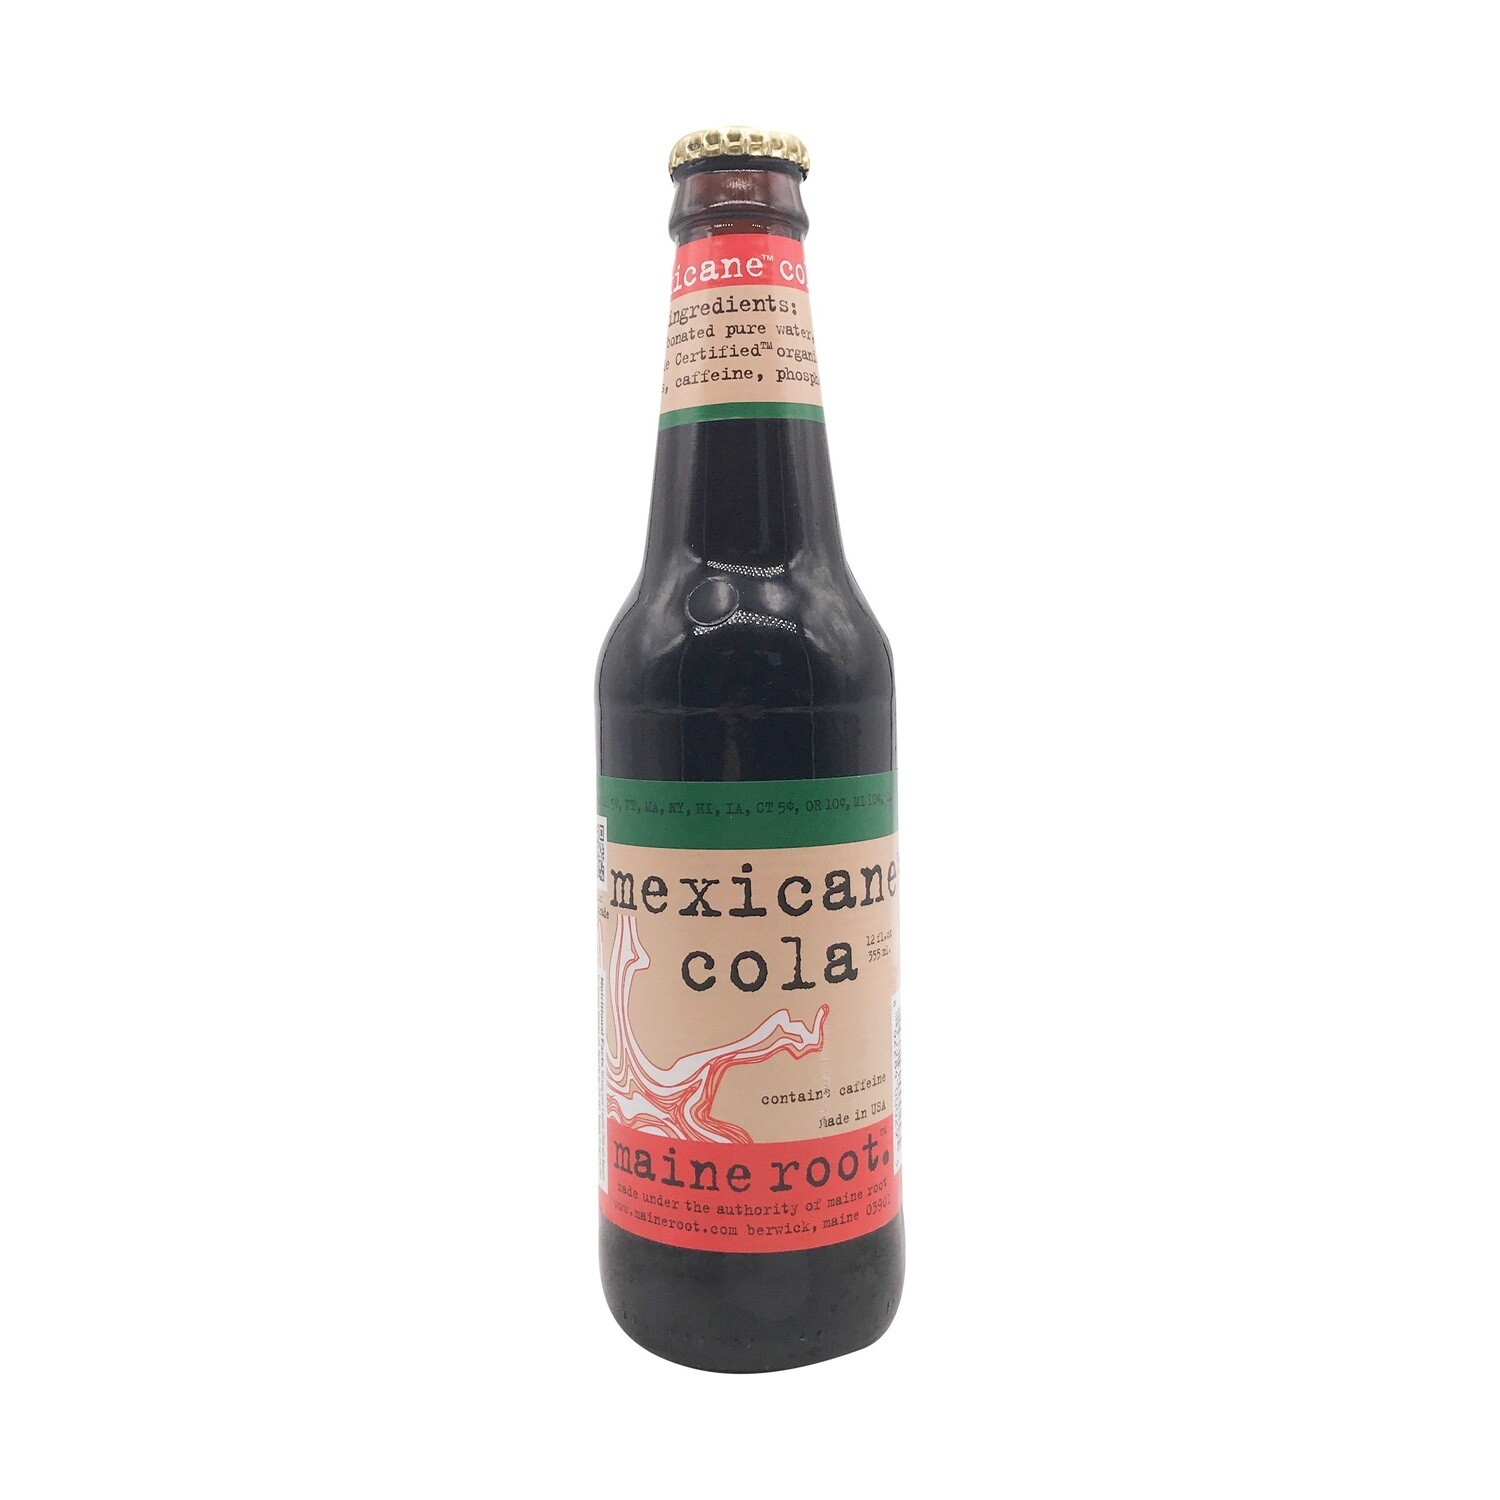 Maine Root Mexican Cola 12oz